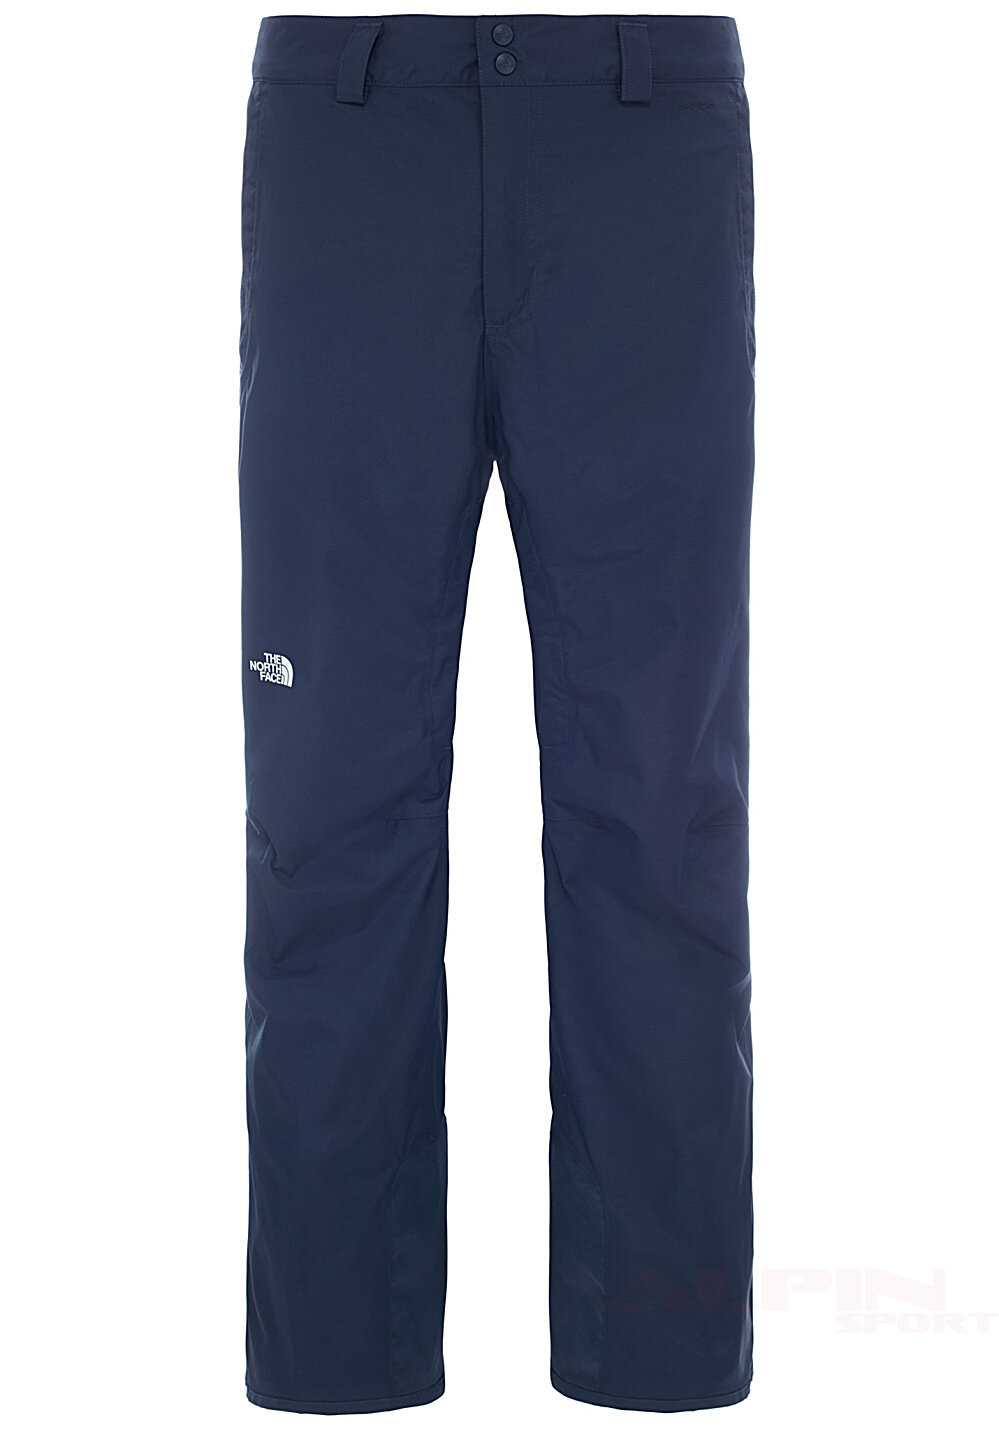 Spodnie męskie THE NORTH FACE Chavanne m chavanne navy 01